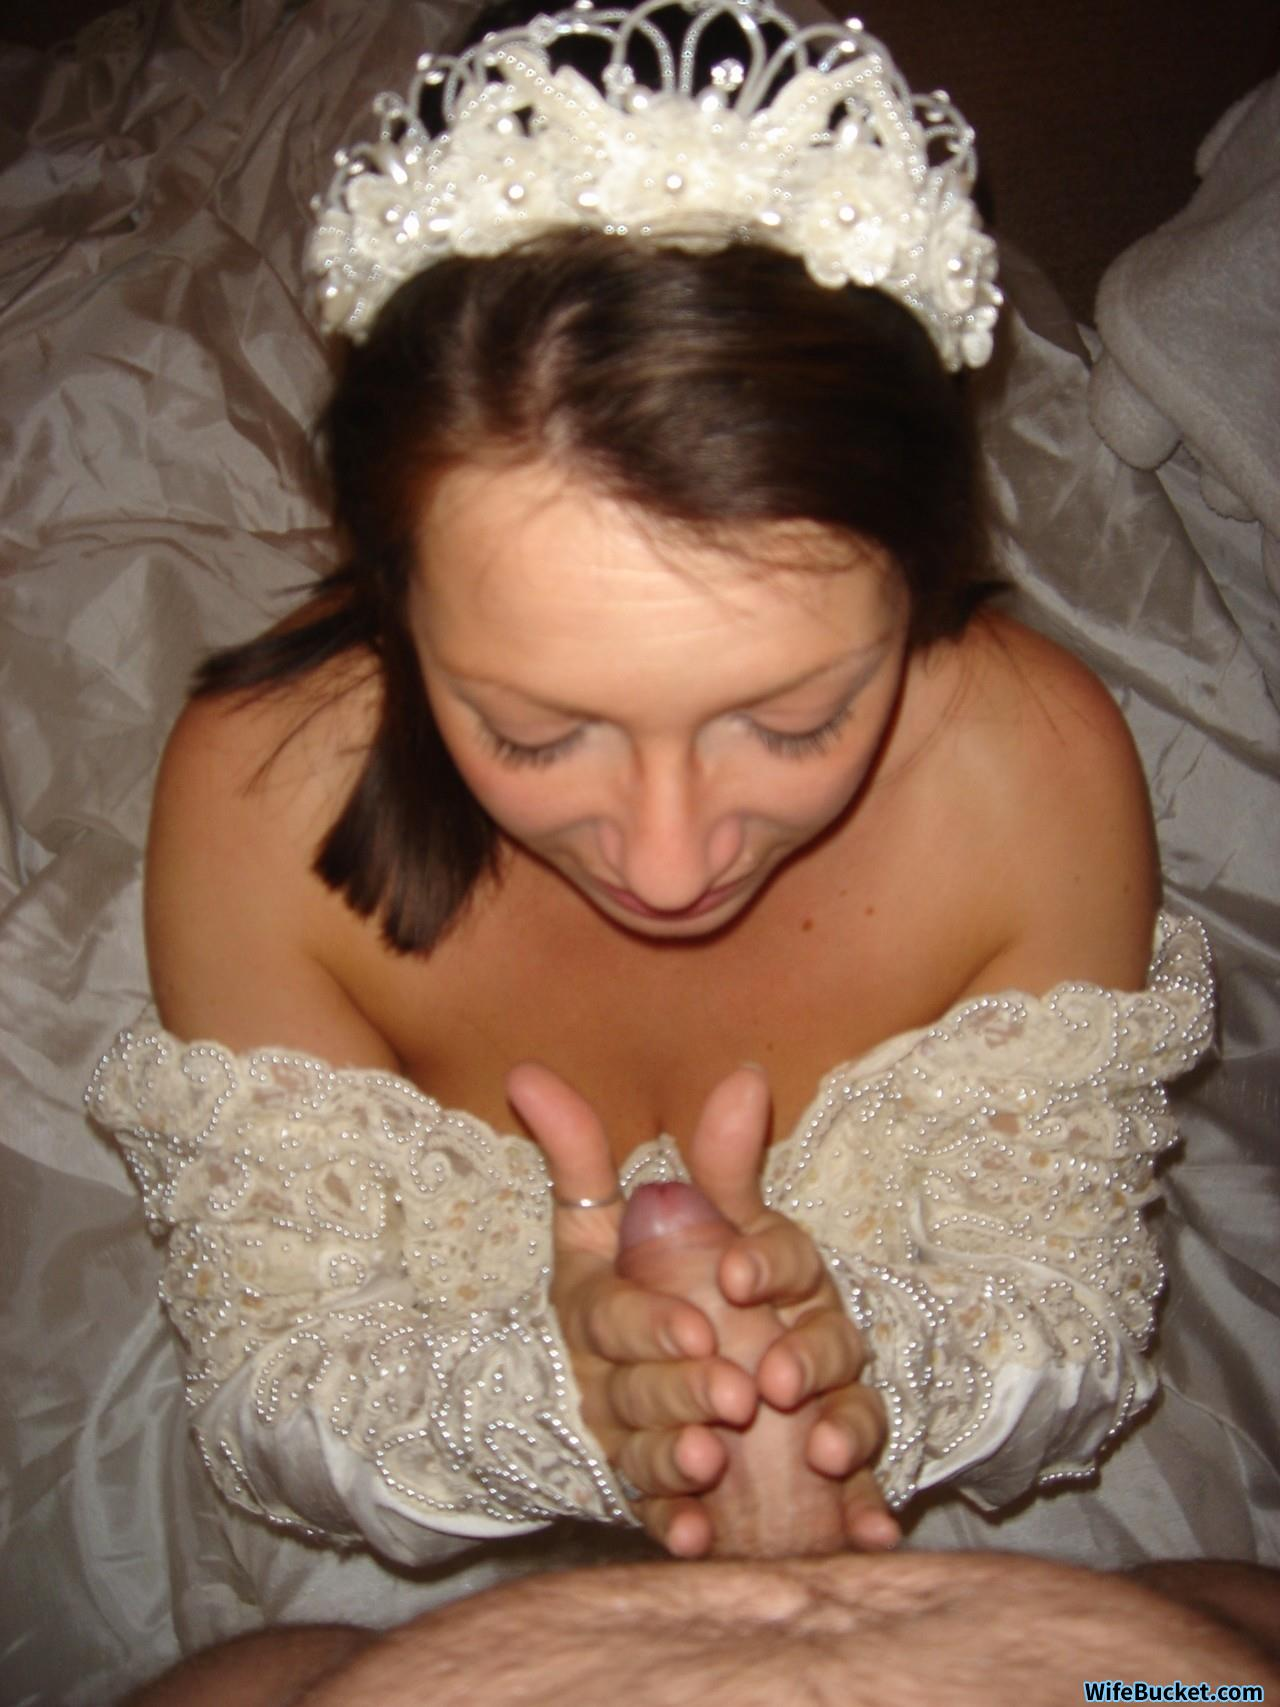 Wedding night blowjob